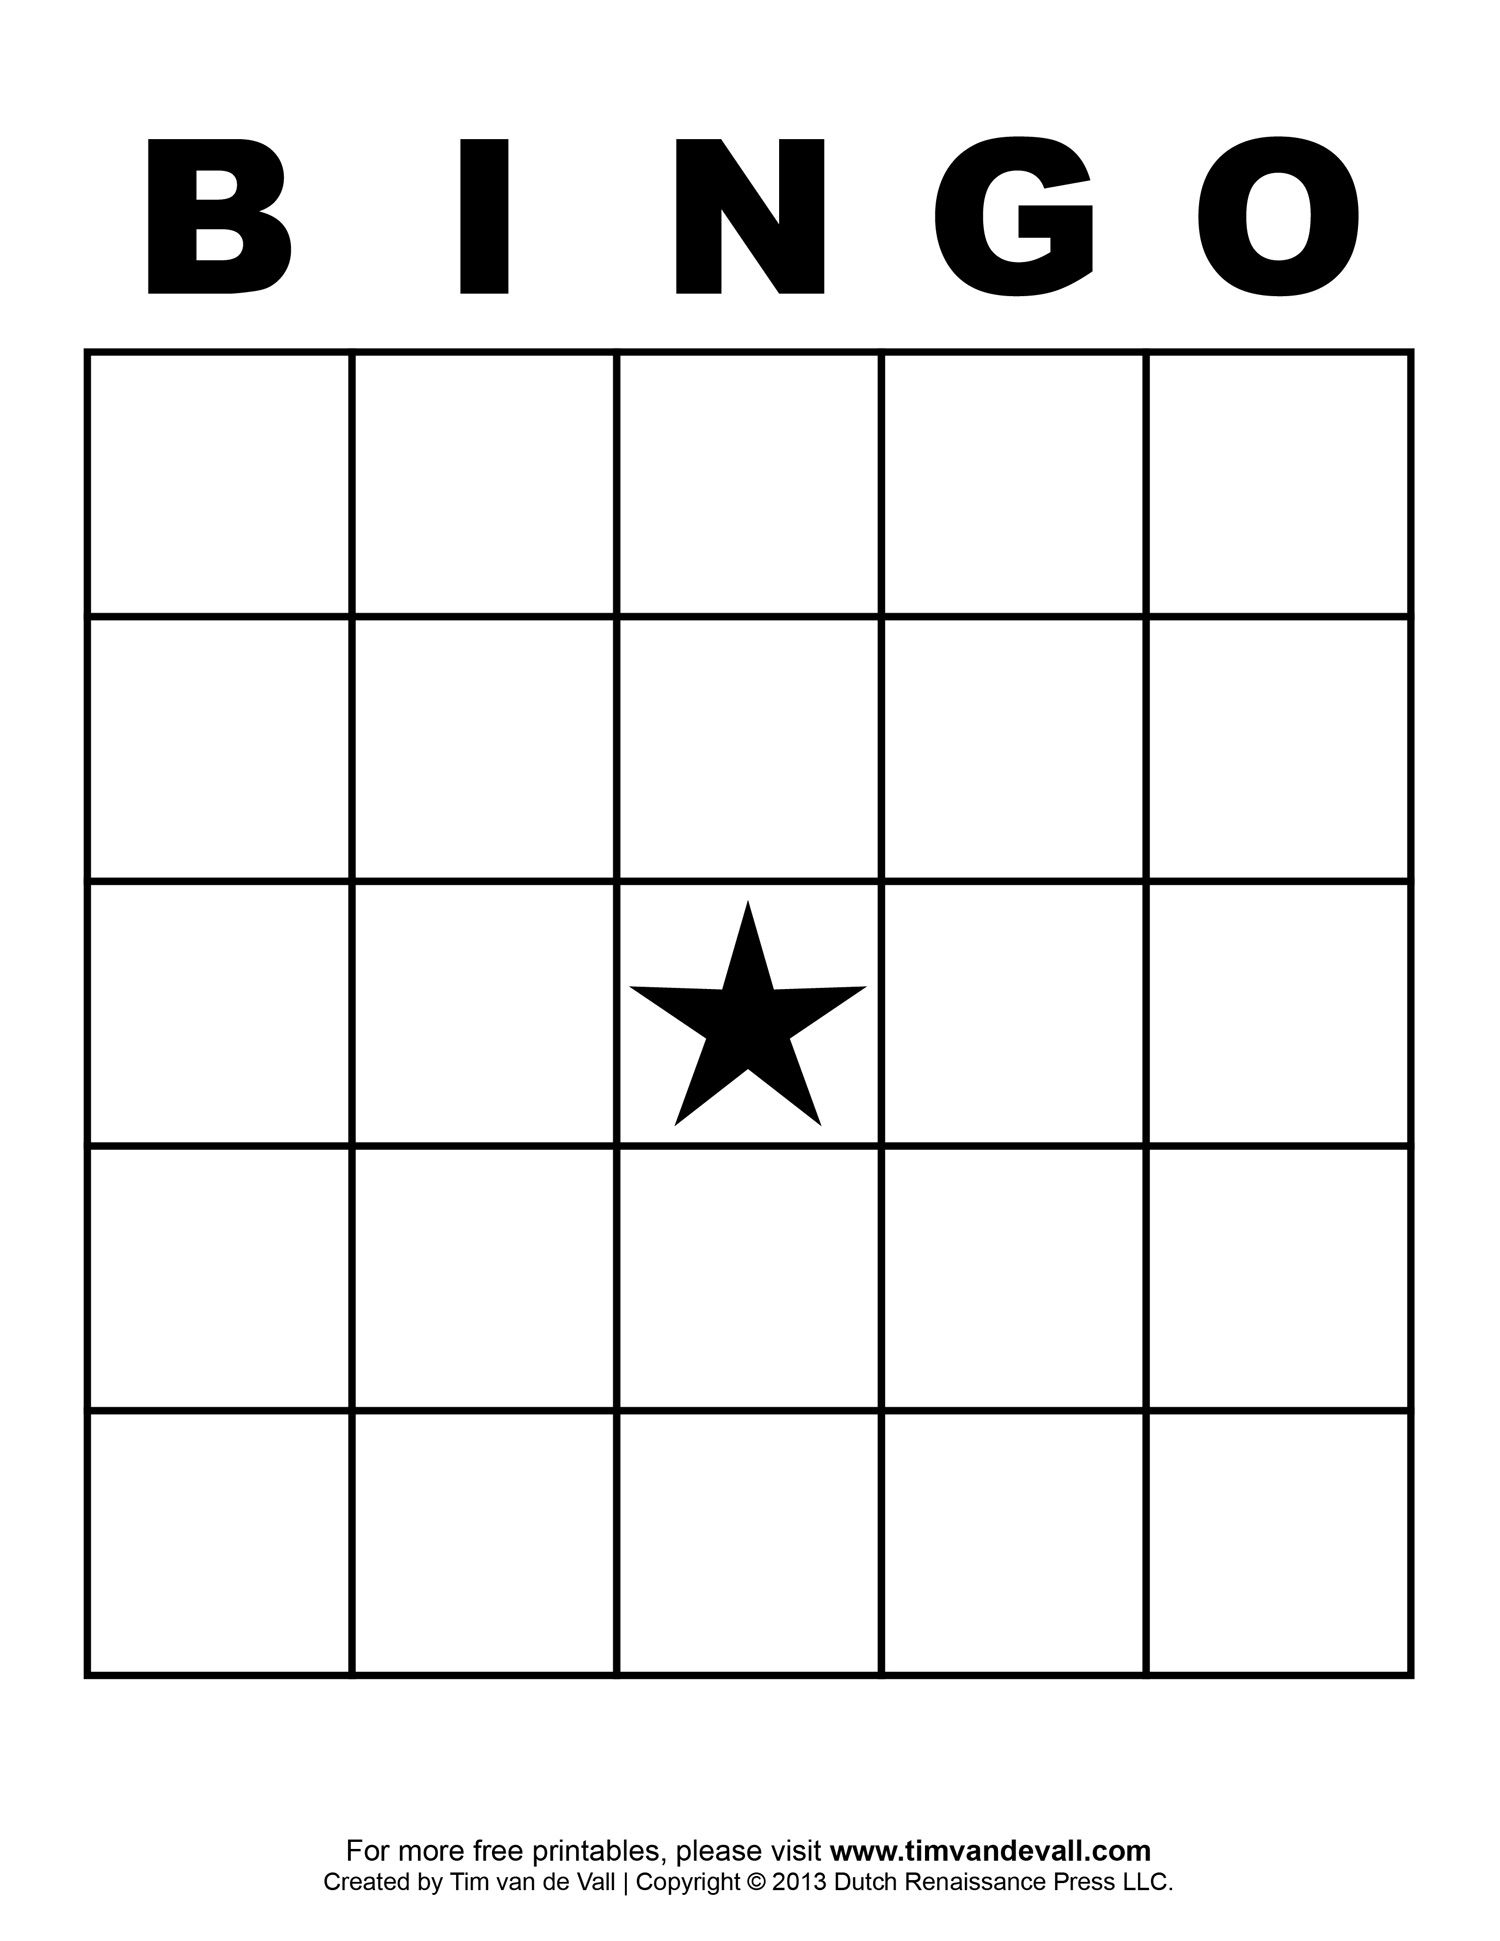 Free Printable Blank Bingo Cards Template 4 X 4 | Classroom | Sight - Free Bingo Patterns Printable